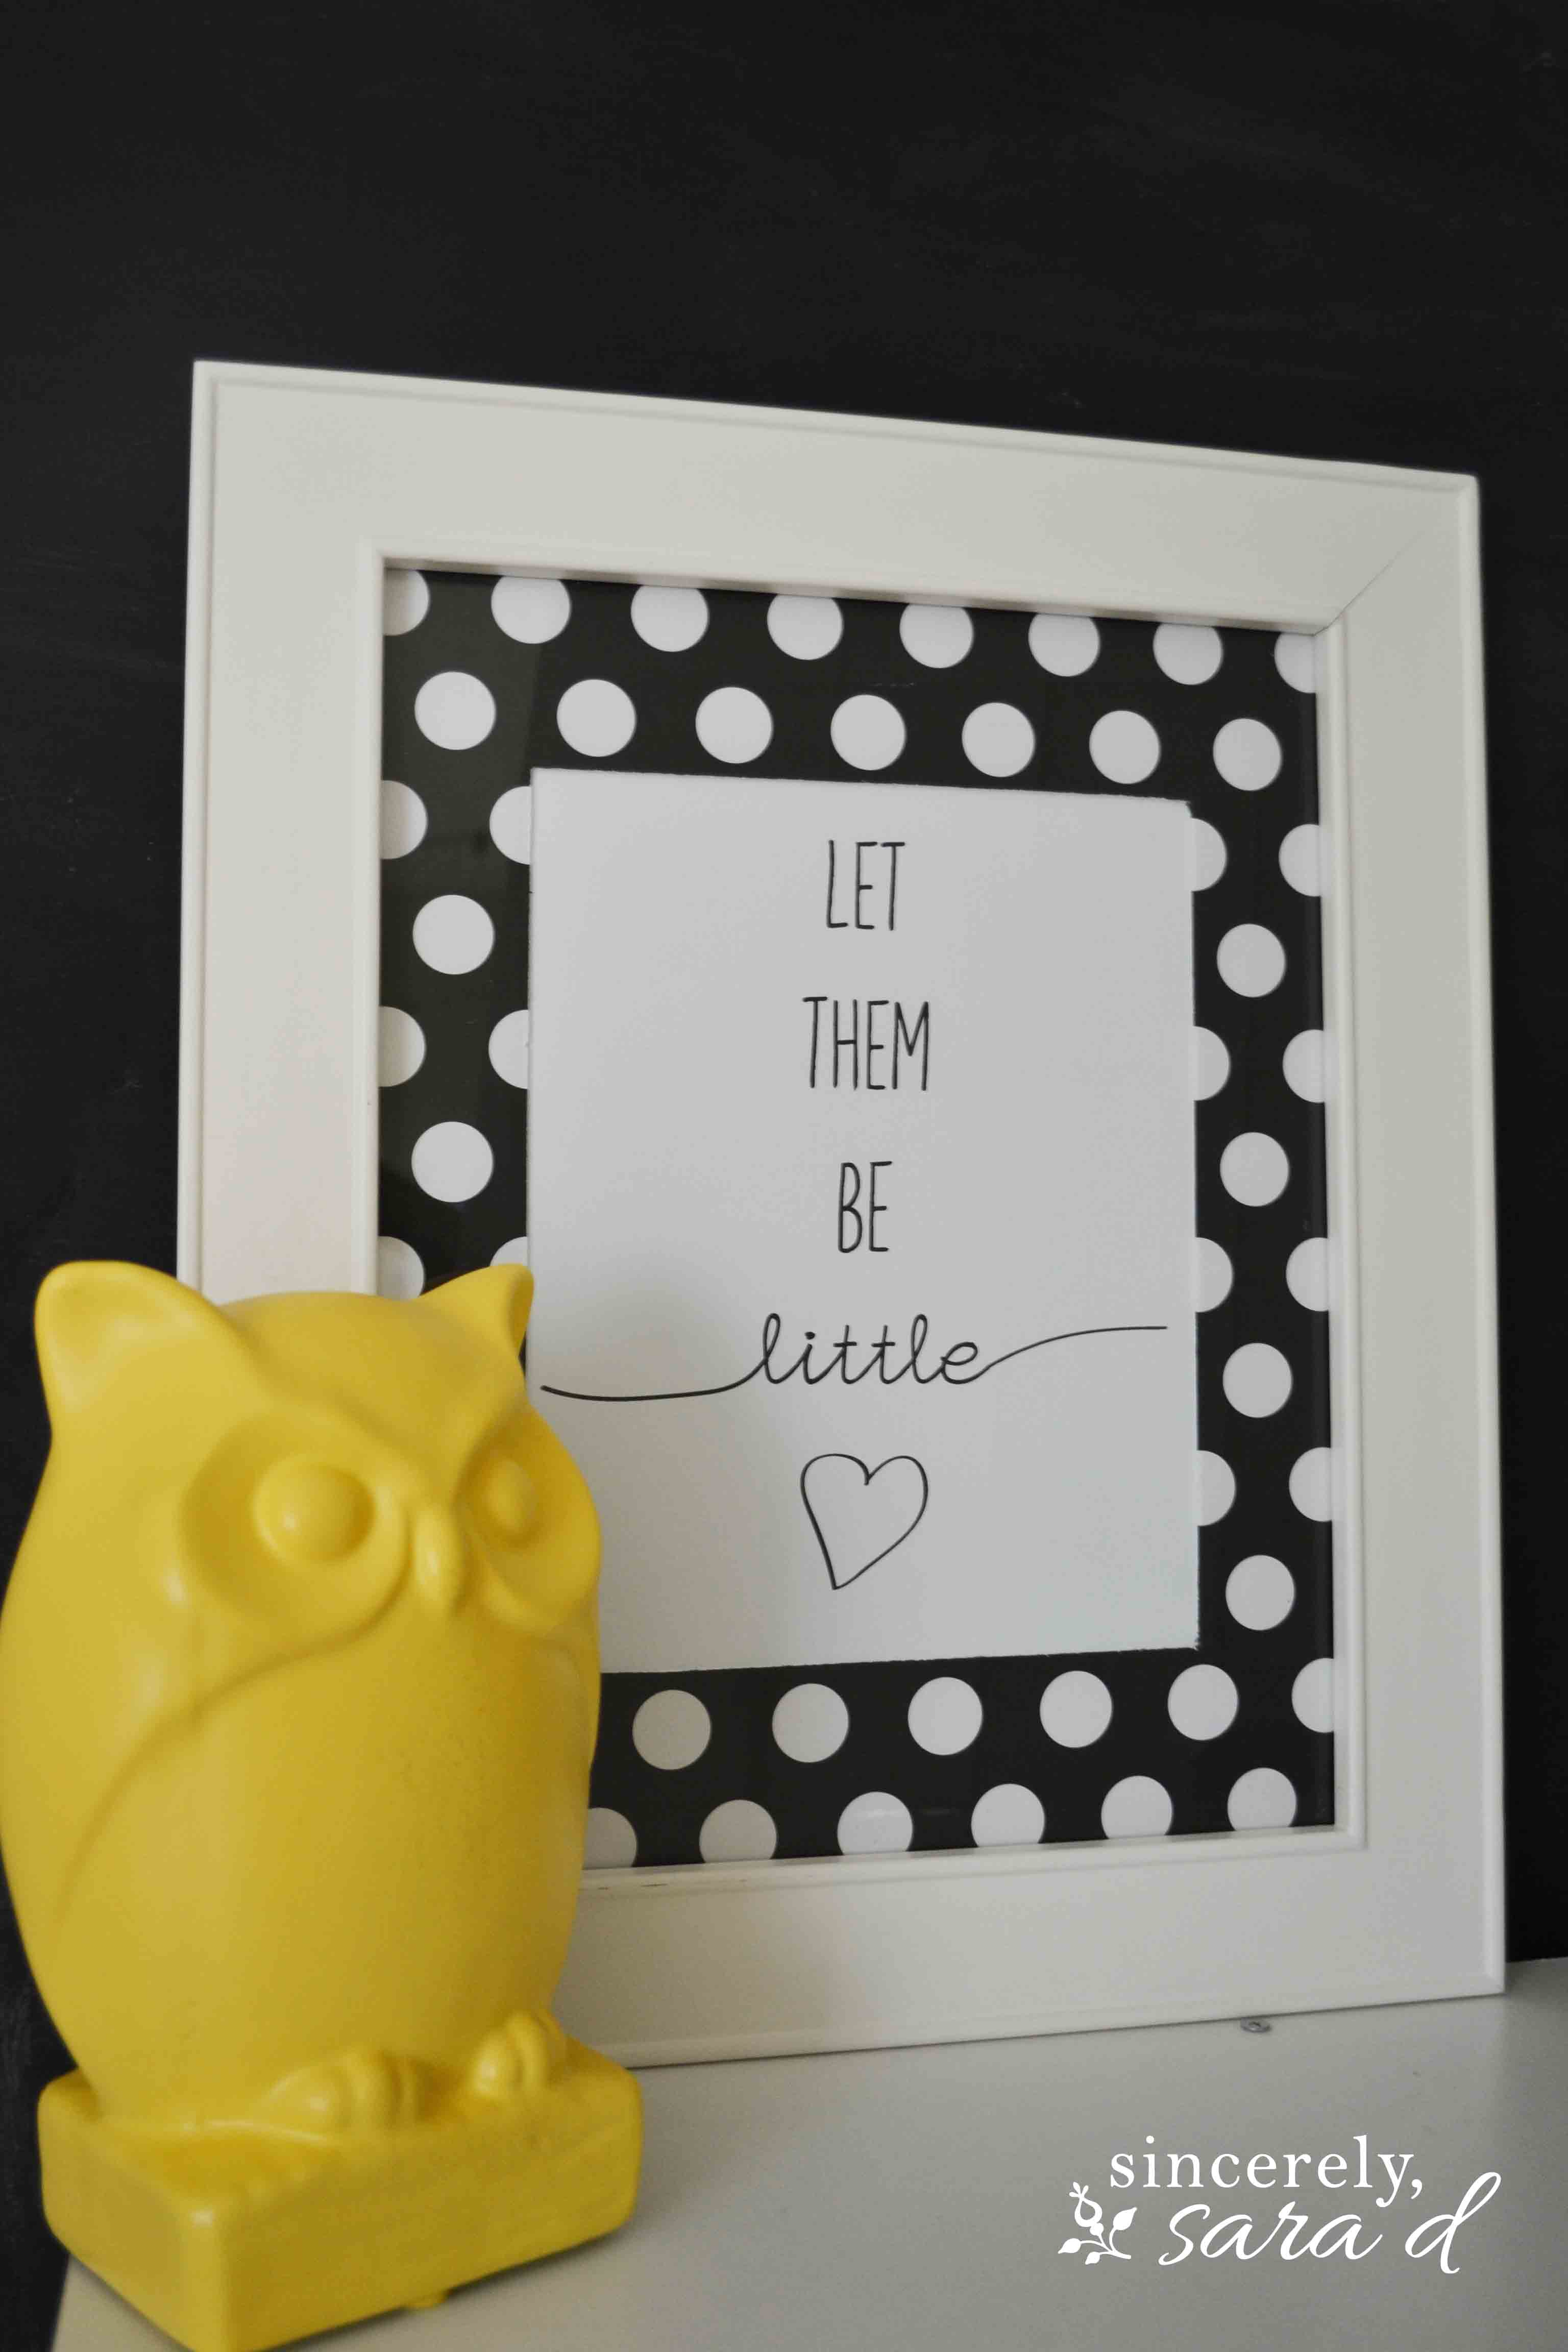 Let Them Be Little – FREE printable!